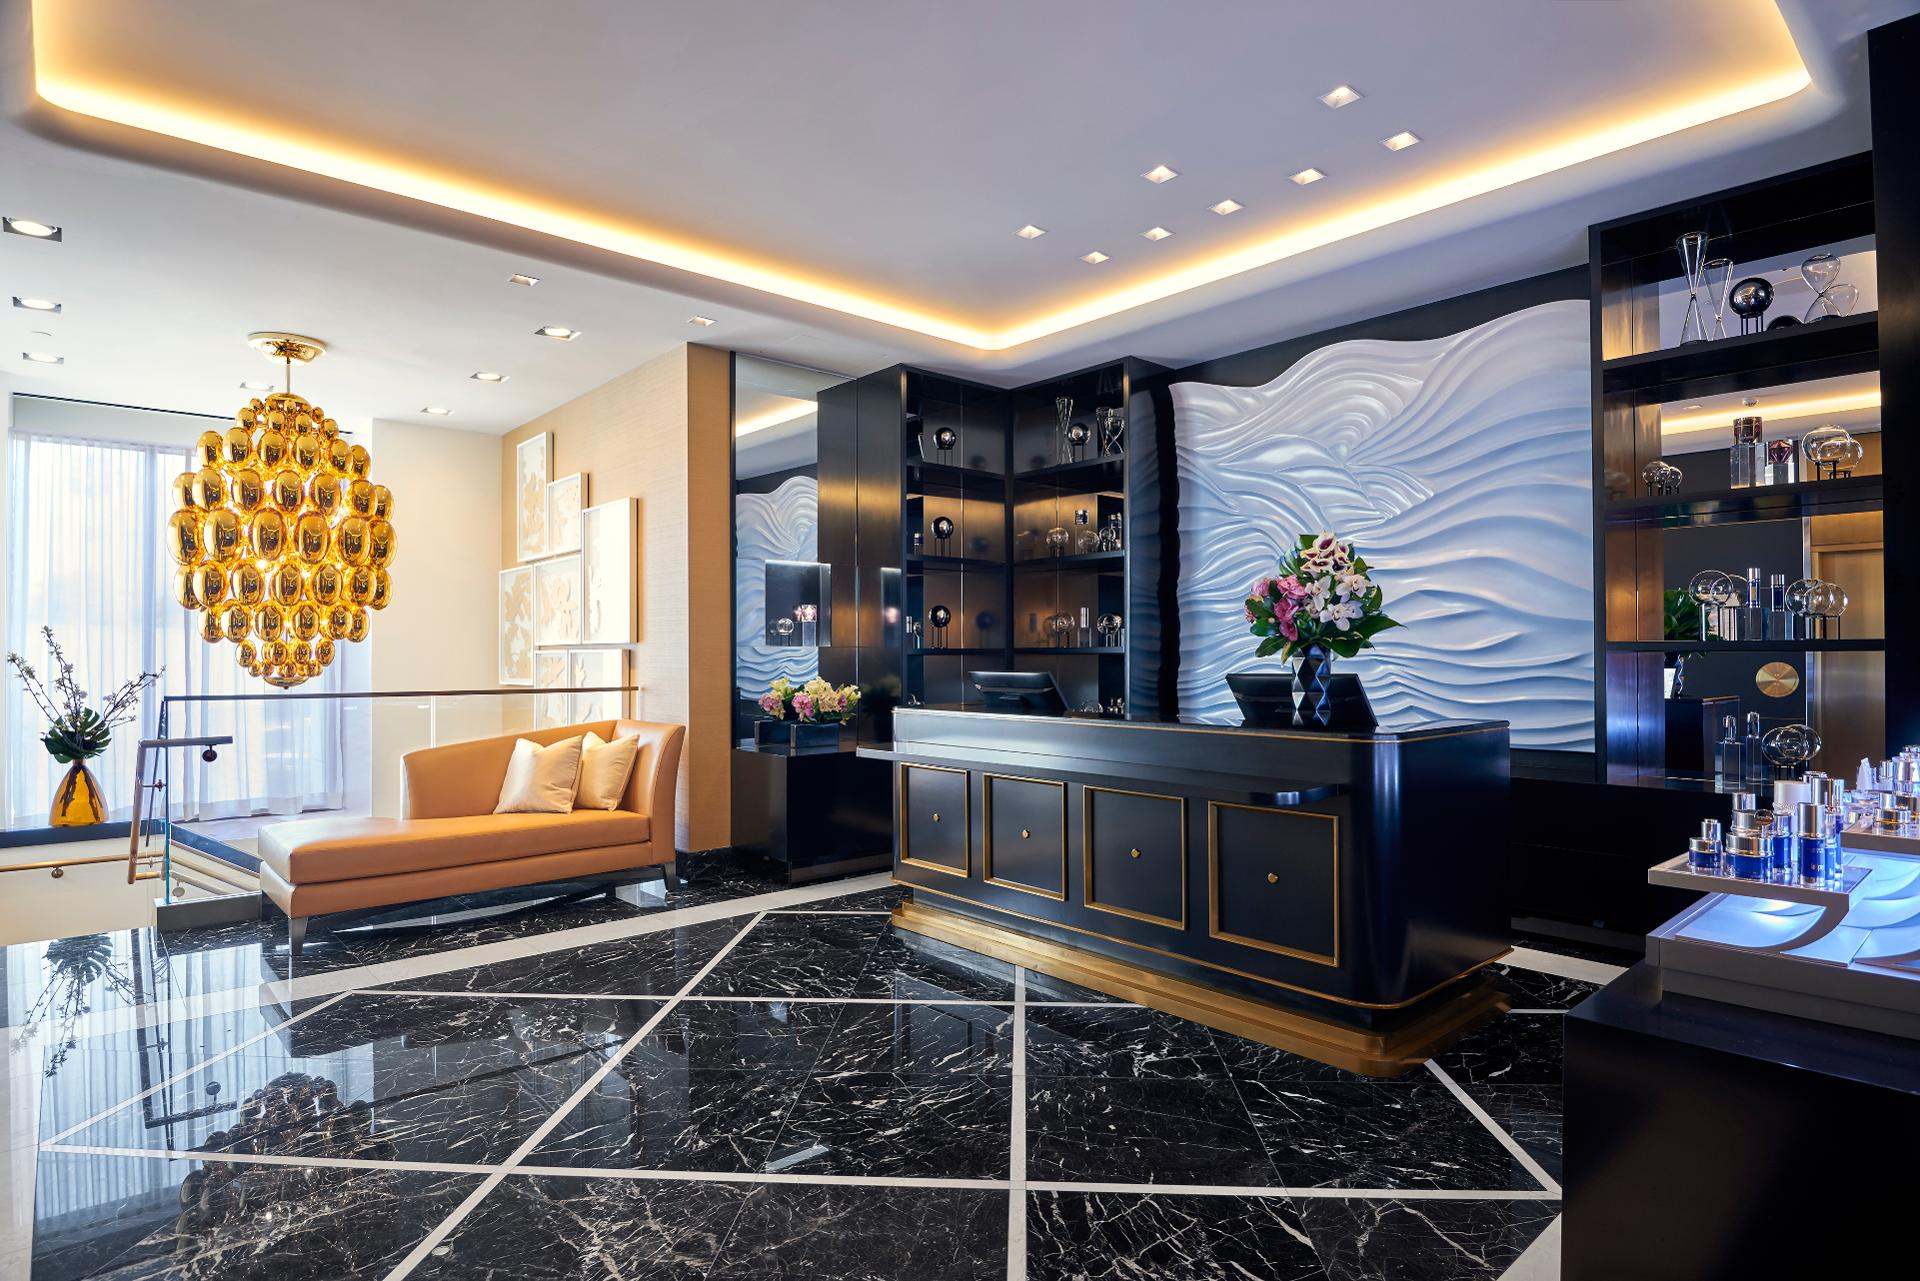 Among the opulent offerings at La Prairie Spa at Waldorf Astoria Beverly Hills is the Diamond Day package, which includes a signature La Prairie Facial and Diamond Perfection Body Treatment, a makeup consultation and a Champagne lunch.